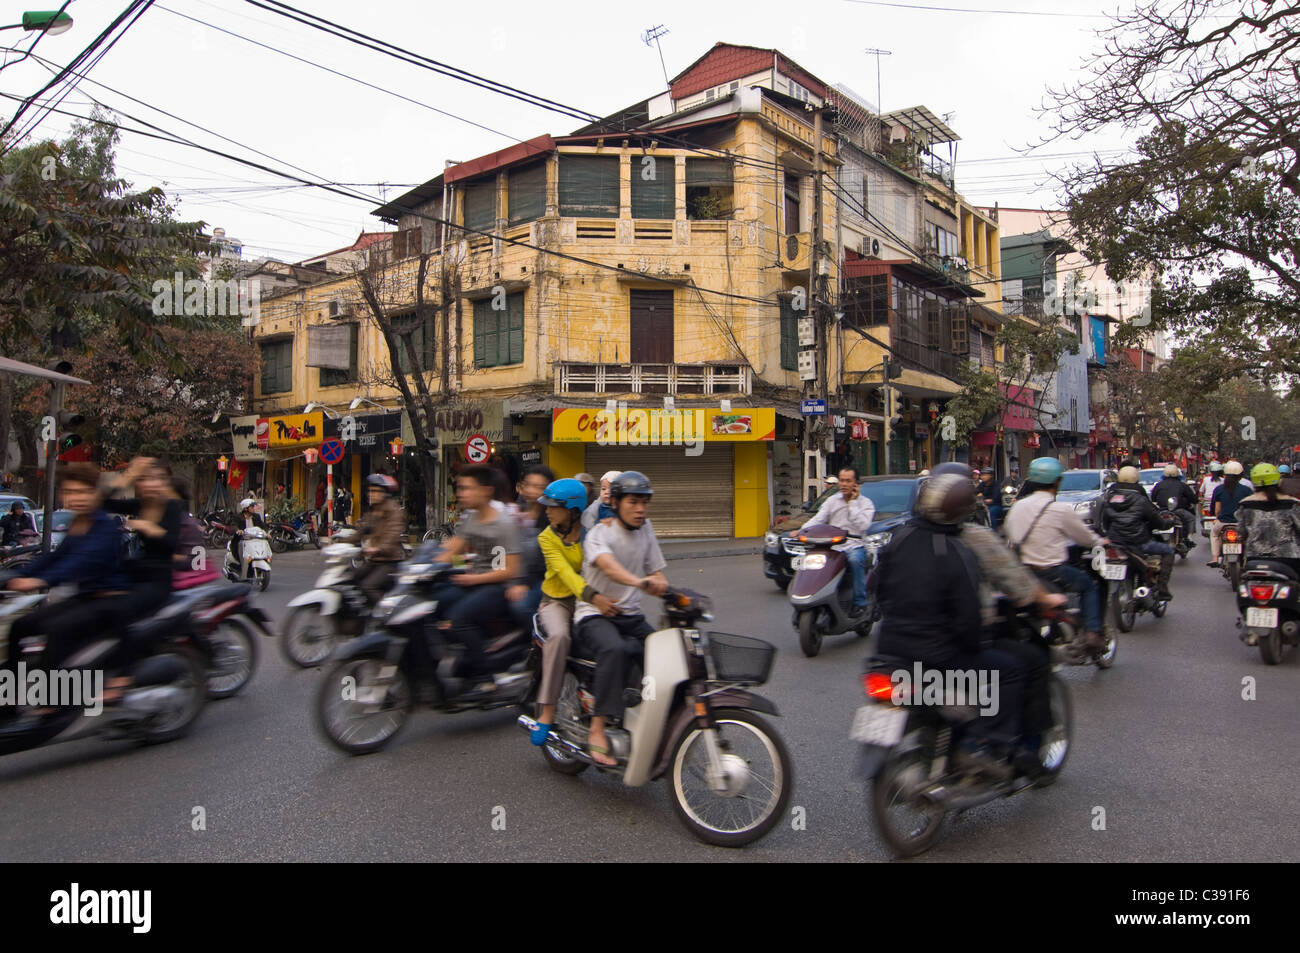 Horizontal wide angle of disorganised chaos on Hanoi's streets with mopeds, motorbikes & scooters everywhere - Stock Image